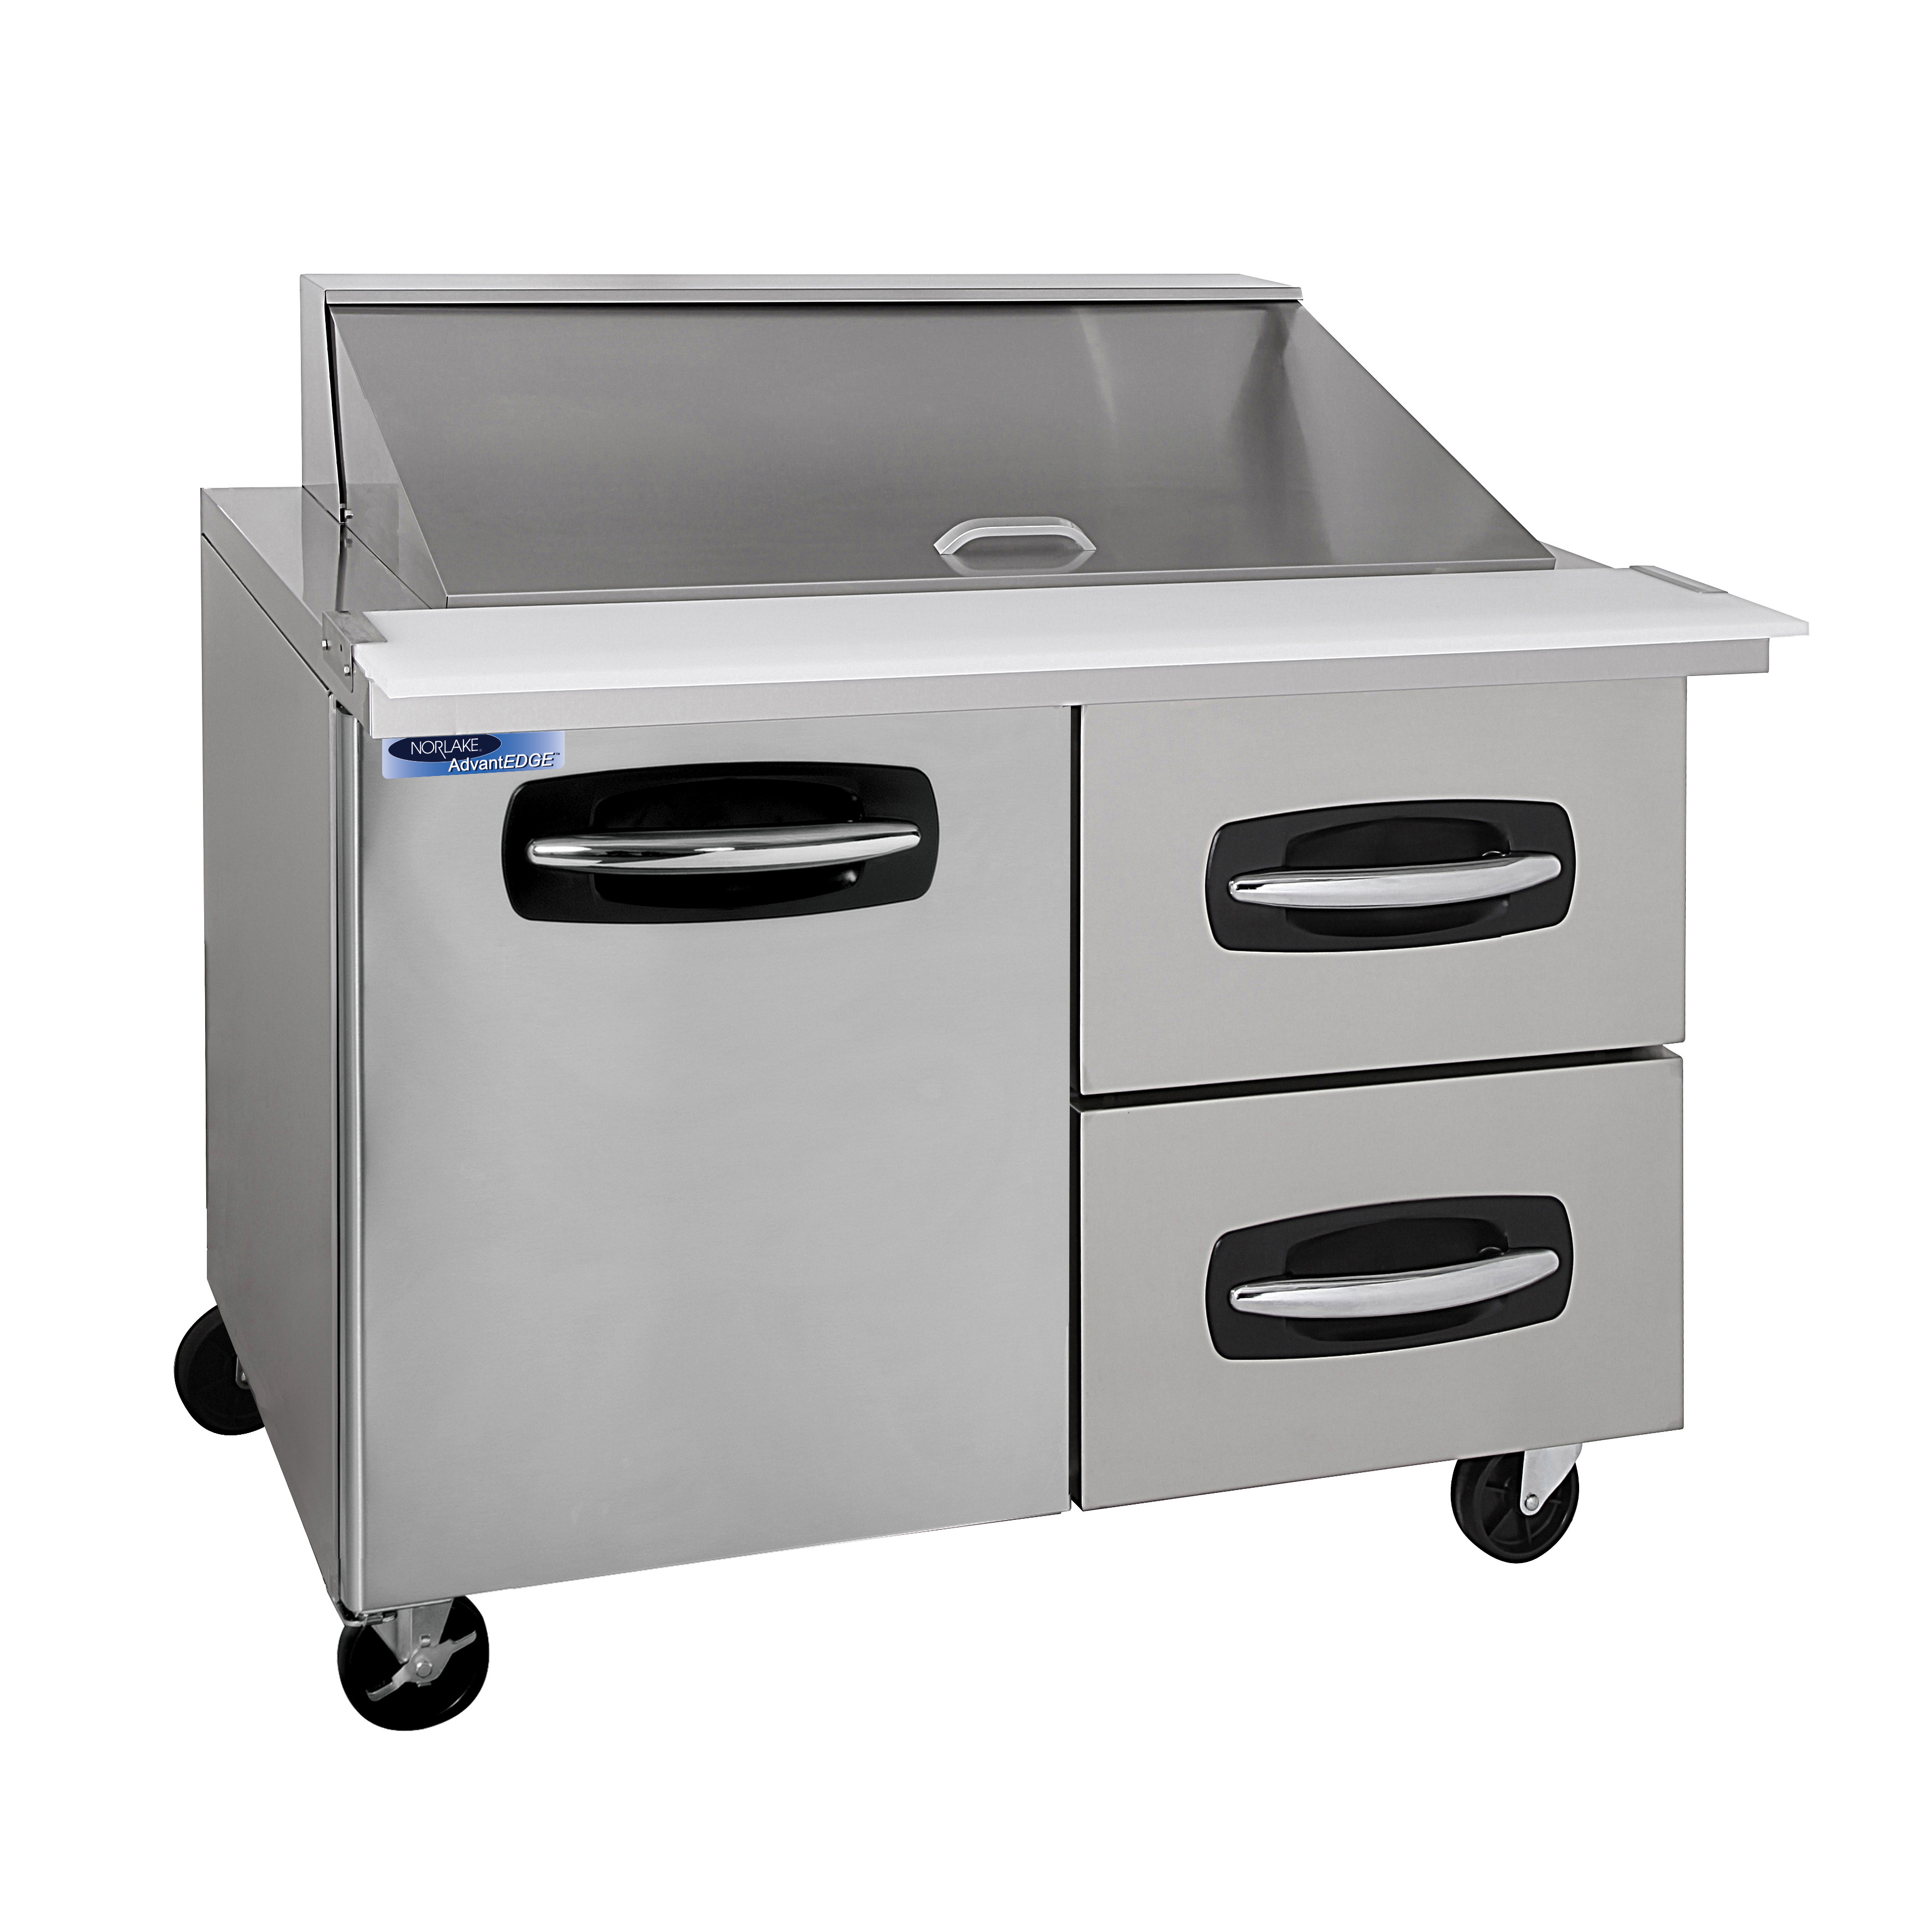 Nor-Lake NLSMP48-18A-002B refrigerated counter, mega top sandwich / salad unit